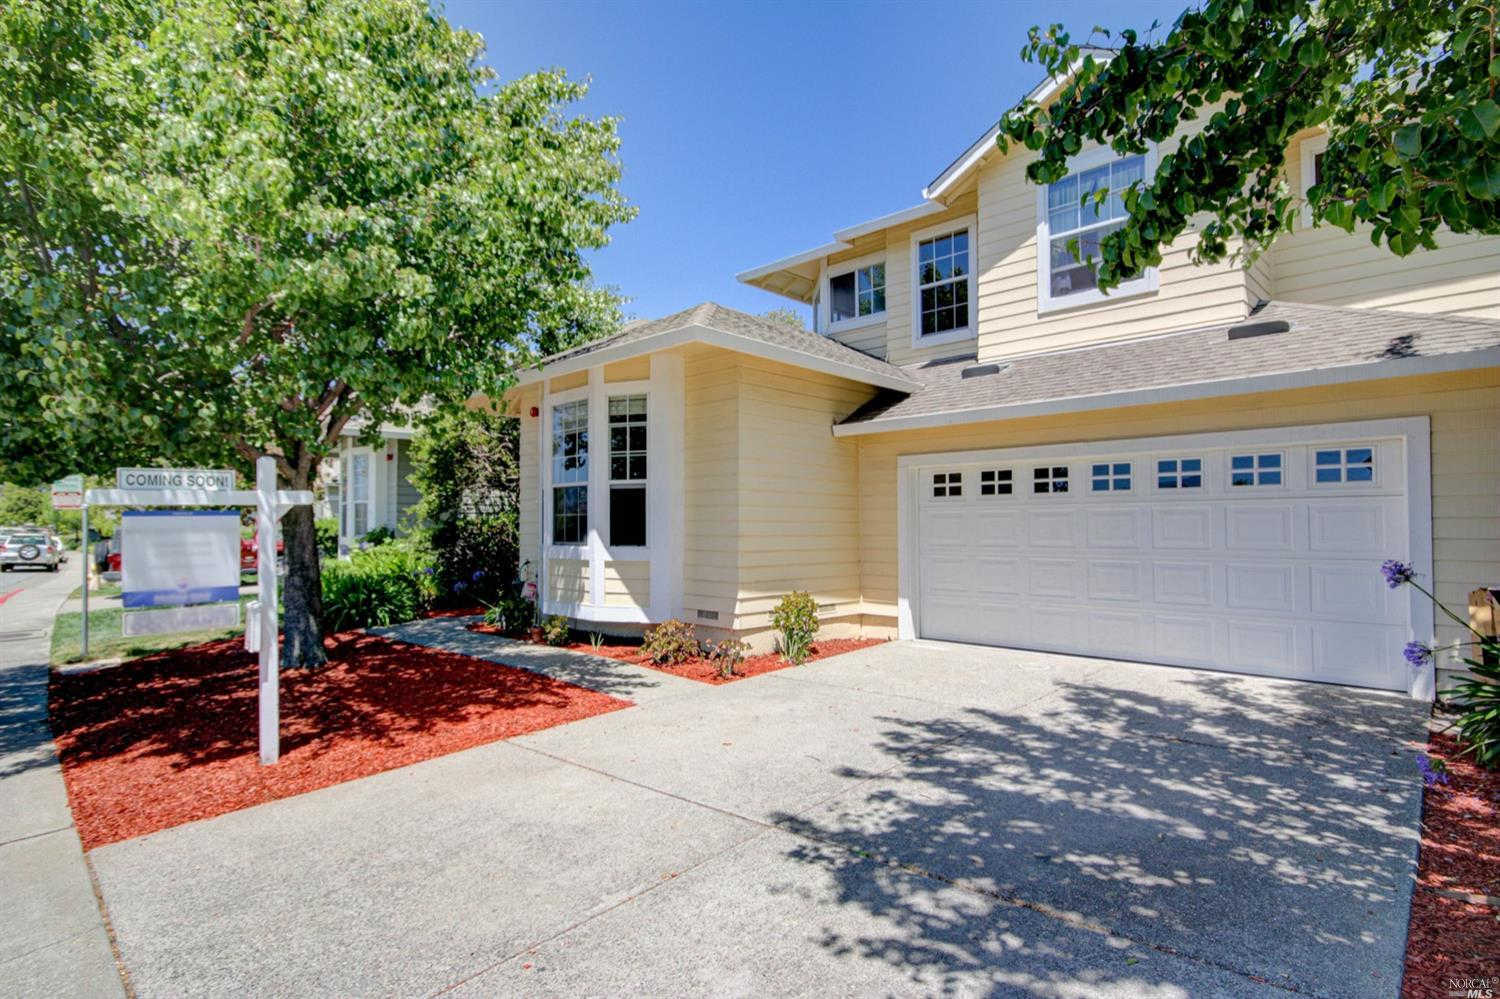 17 Baypoint Village Drive, San Rafael, CA 94901 now has a new price of $775,000!